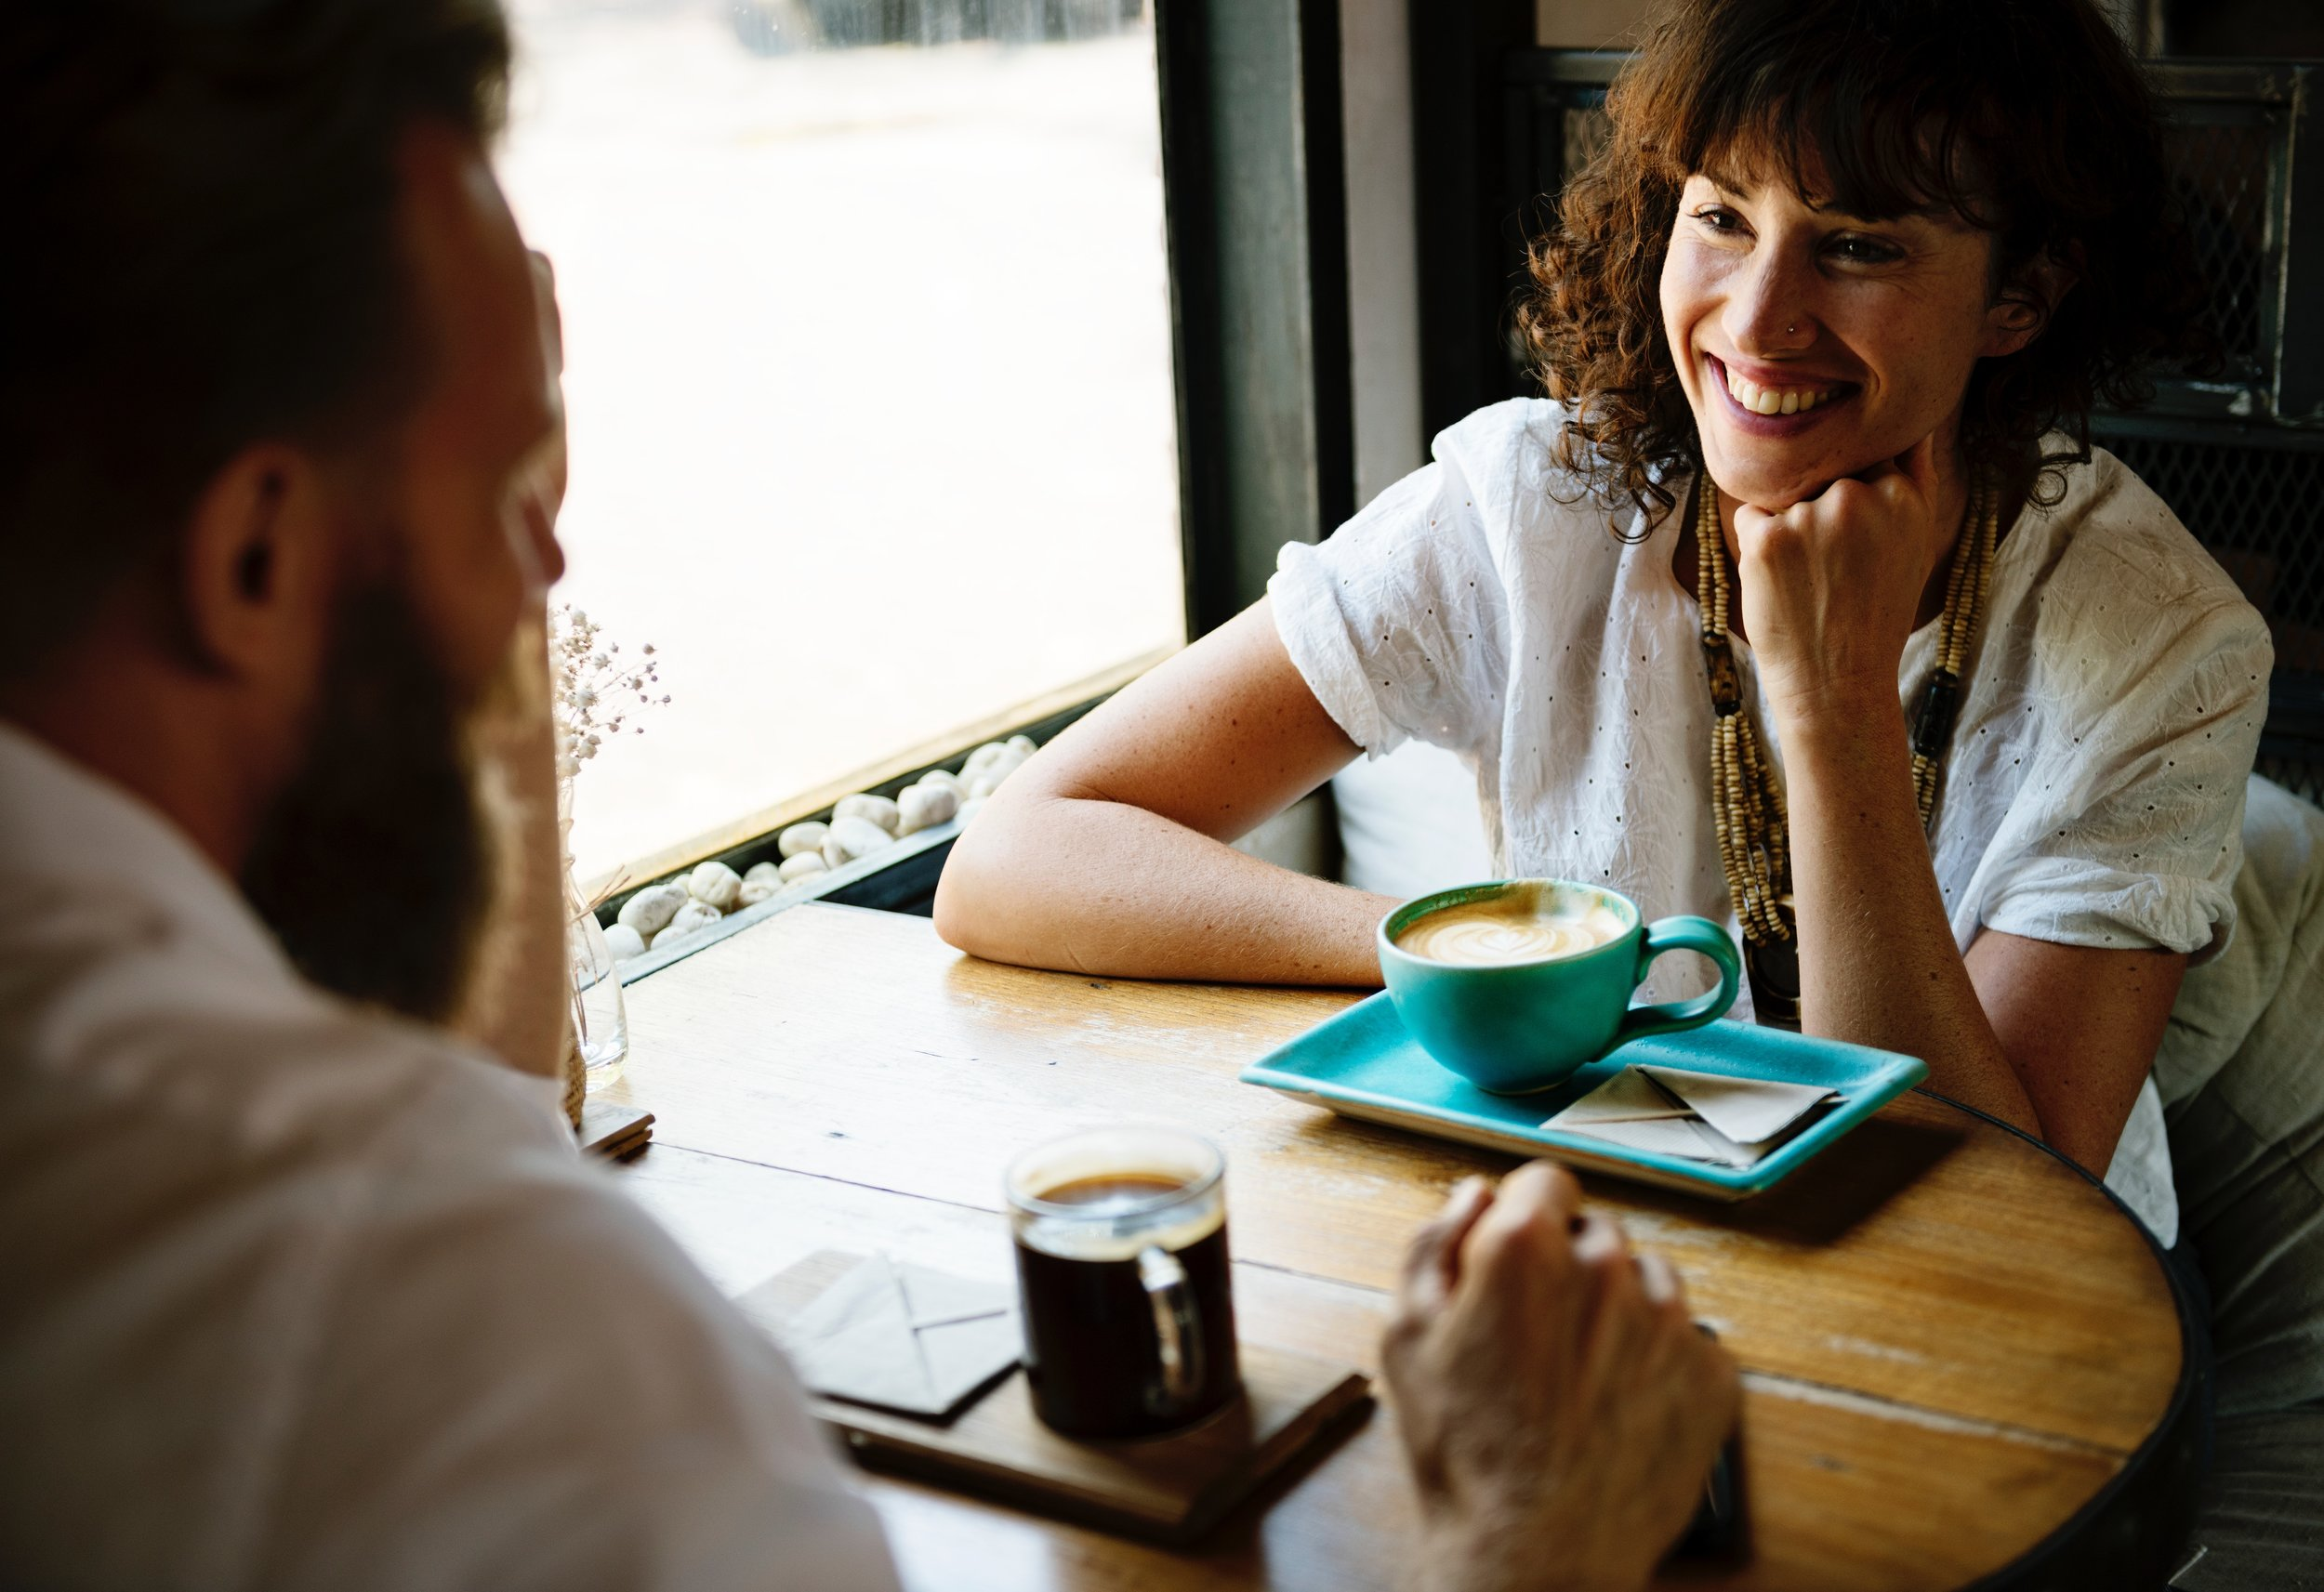 How do i know if I'm dating the right person?